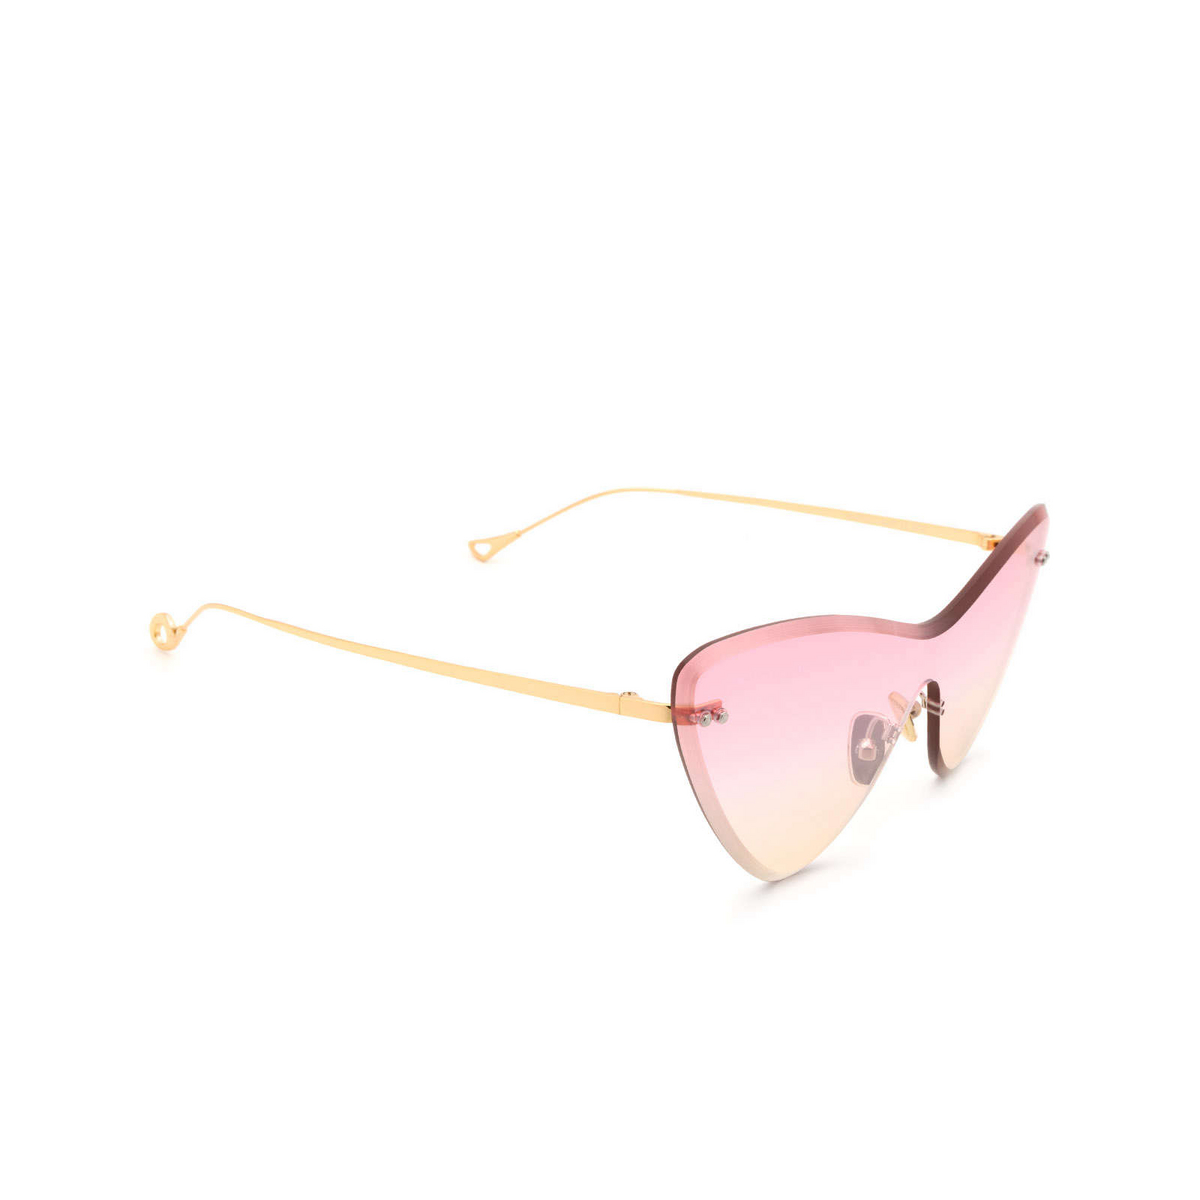 Eyepetizer® Mask Sunglasses: Ocean color Gold C.4-22F - three-quarters view.